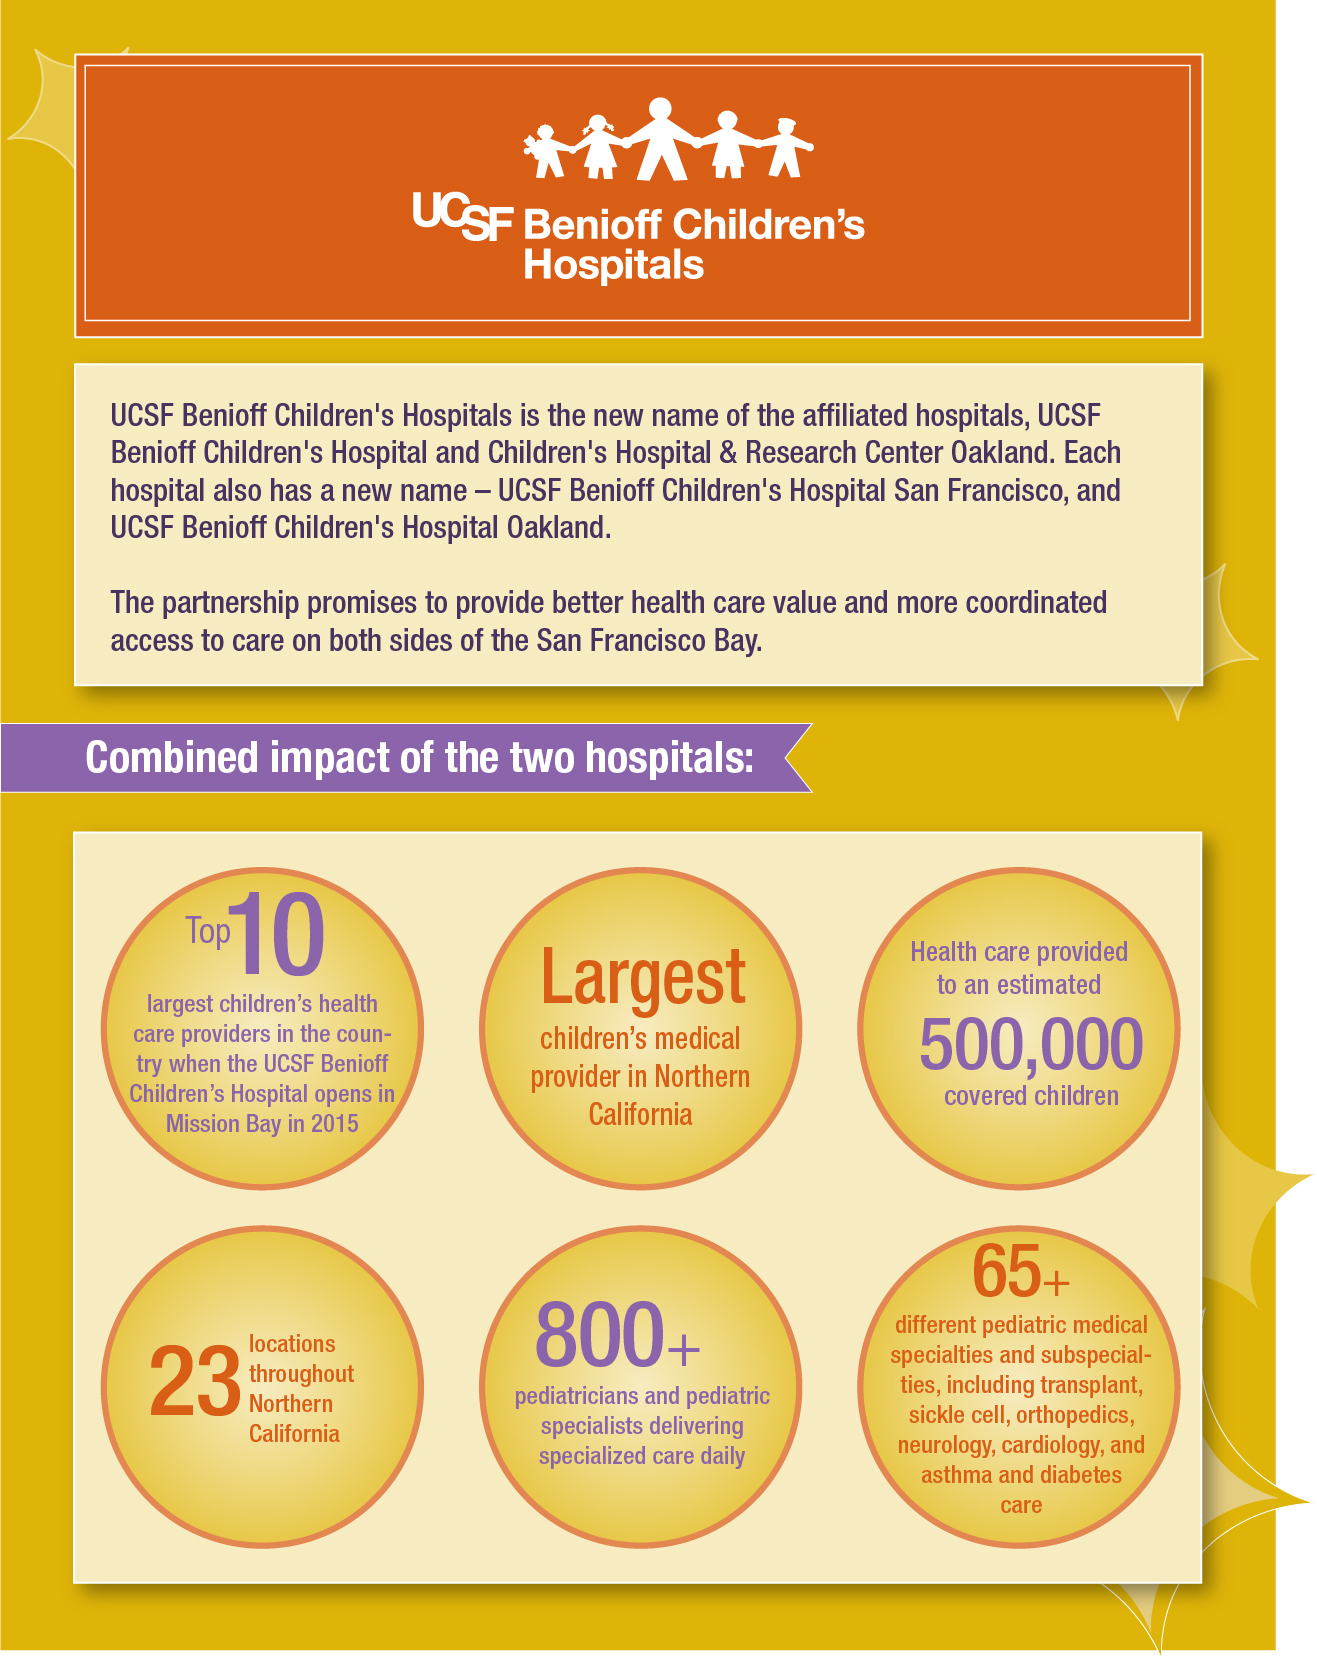 preview of UCSF Benioff Children's Hospitals infographic